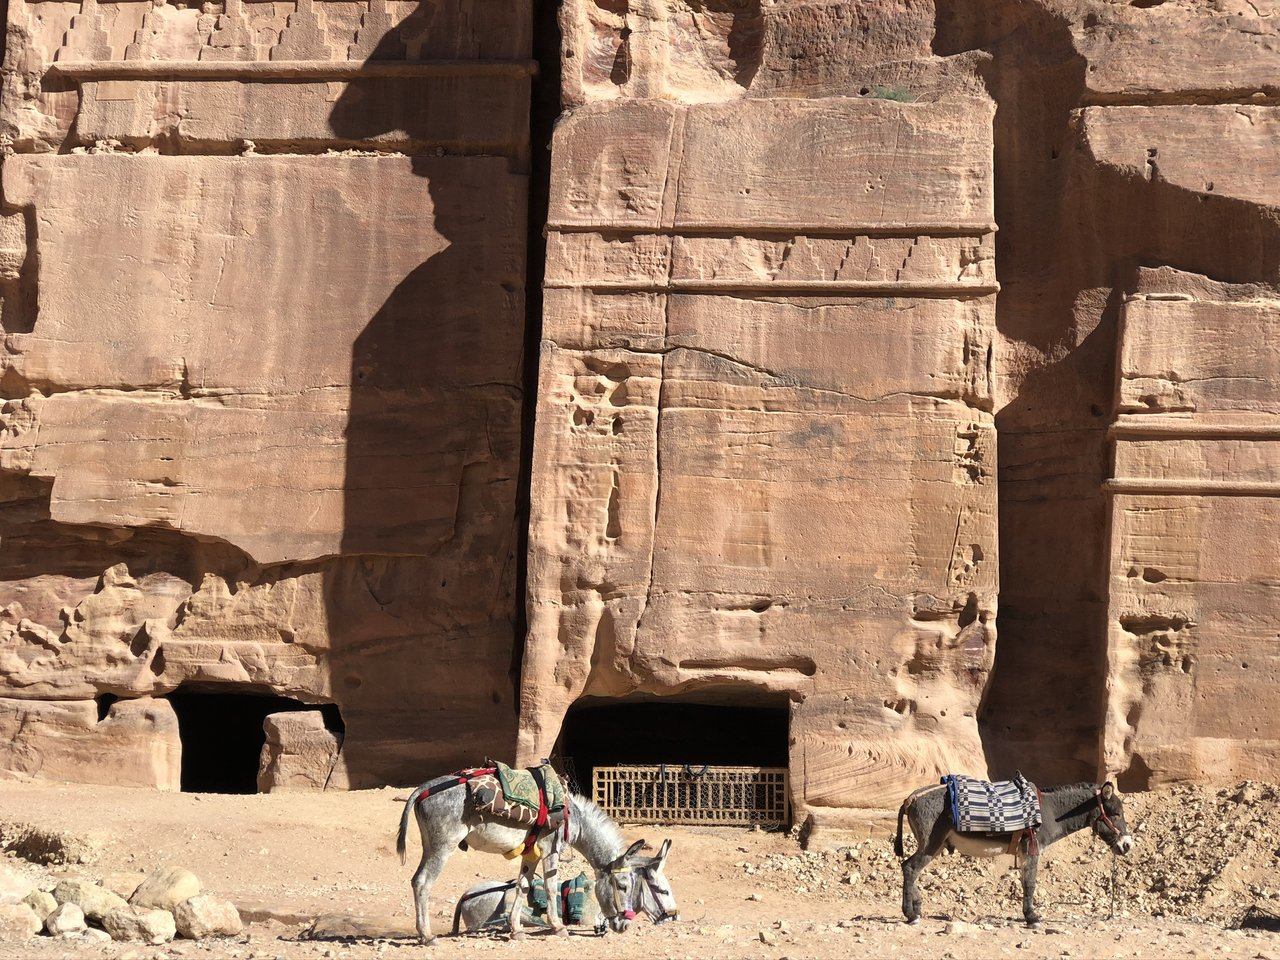 Local donkeys in Petra